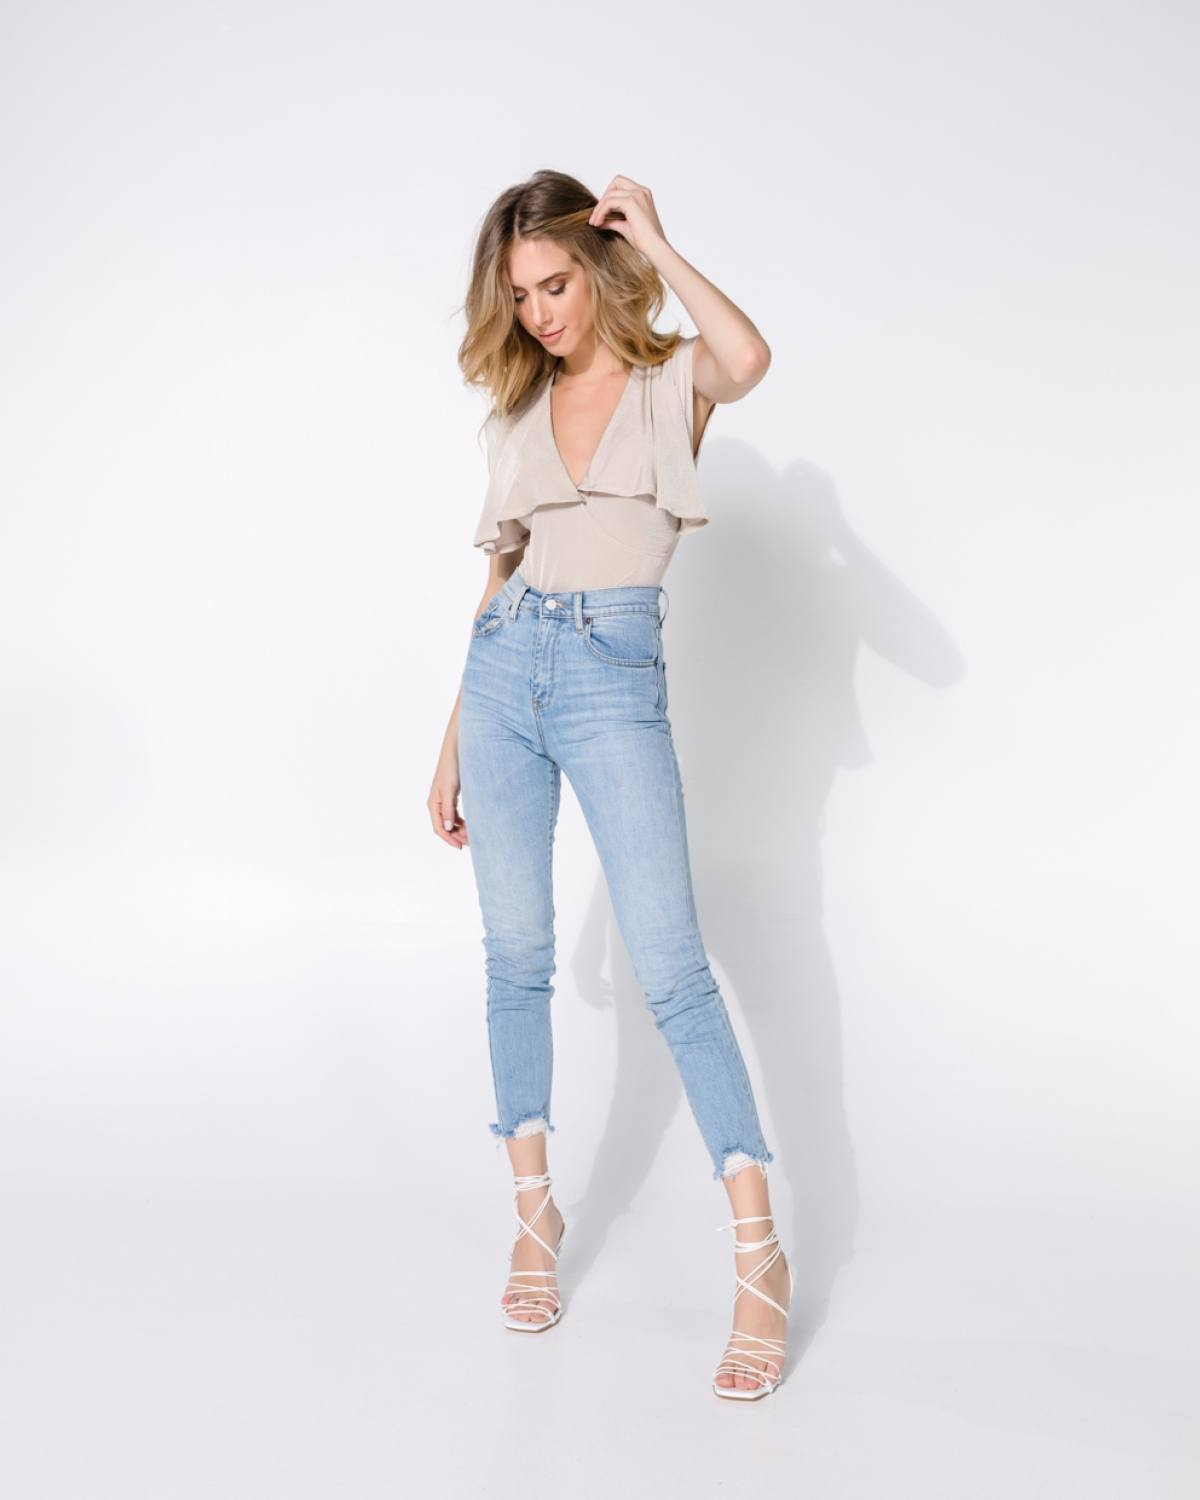 Kate Light Cropped Jeans